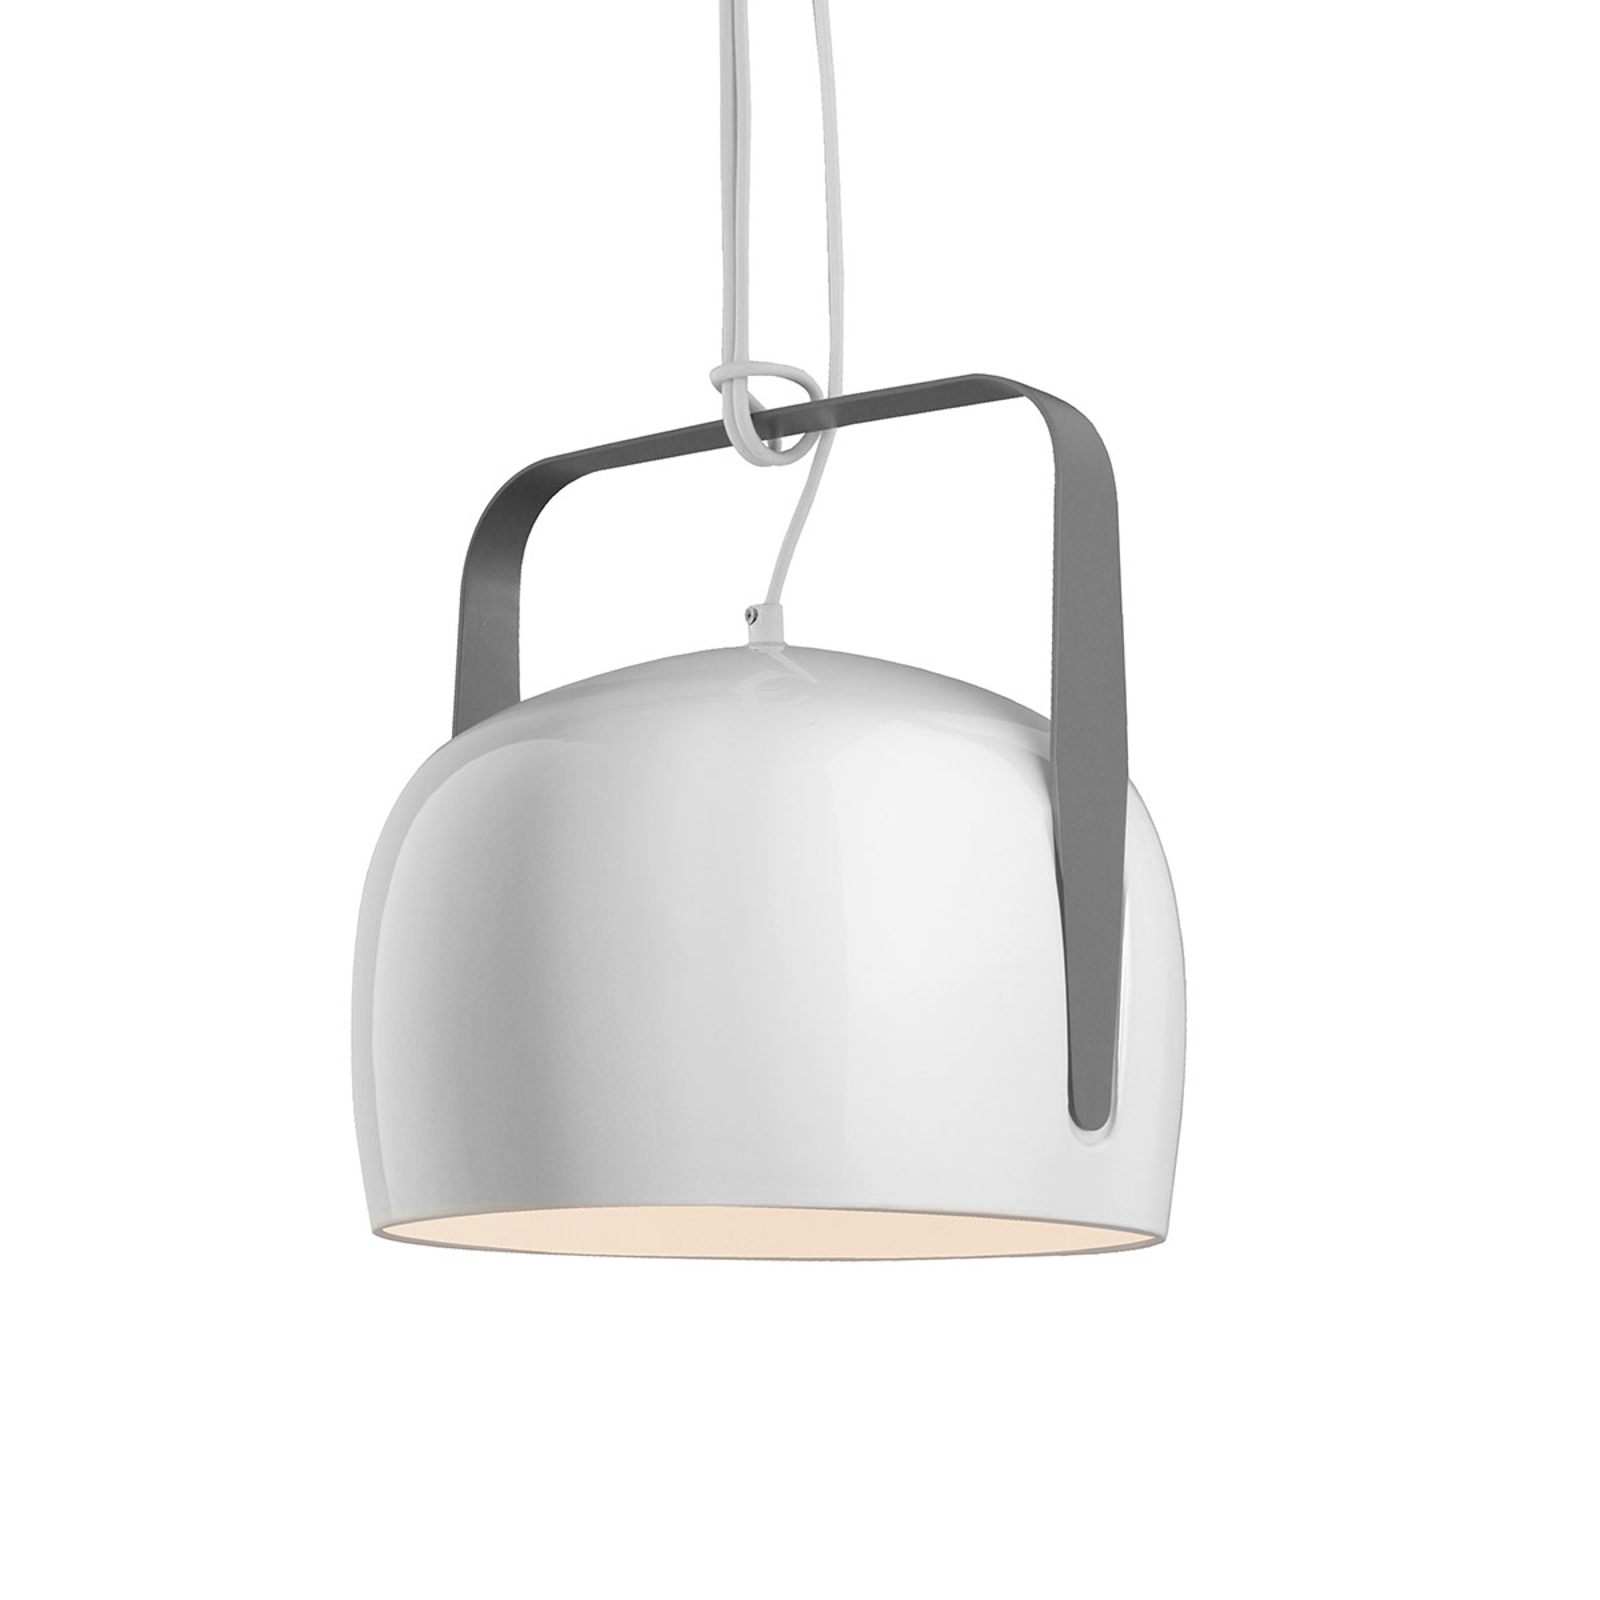 Karman Bag - suspension blanche Ø 21 cm, lisse